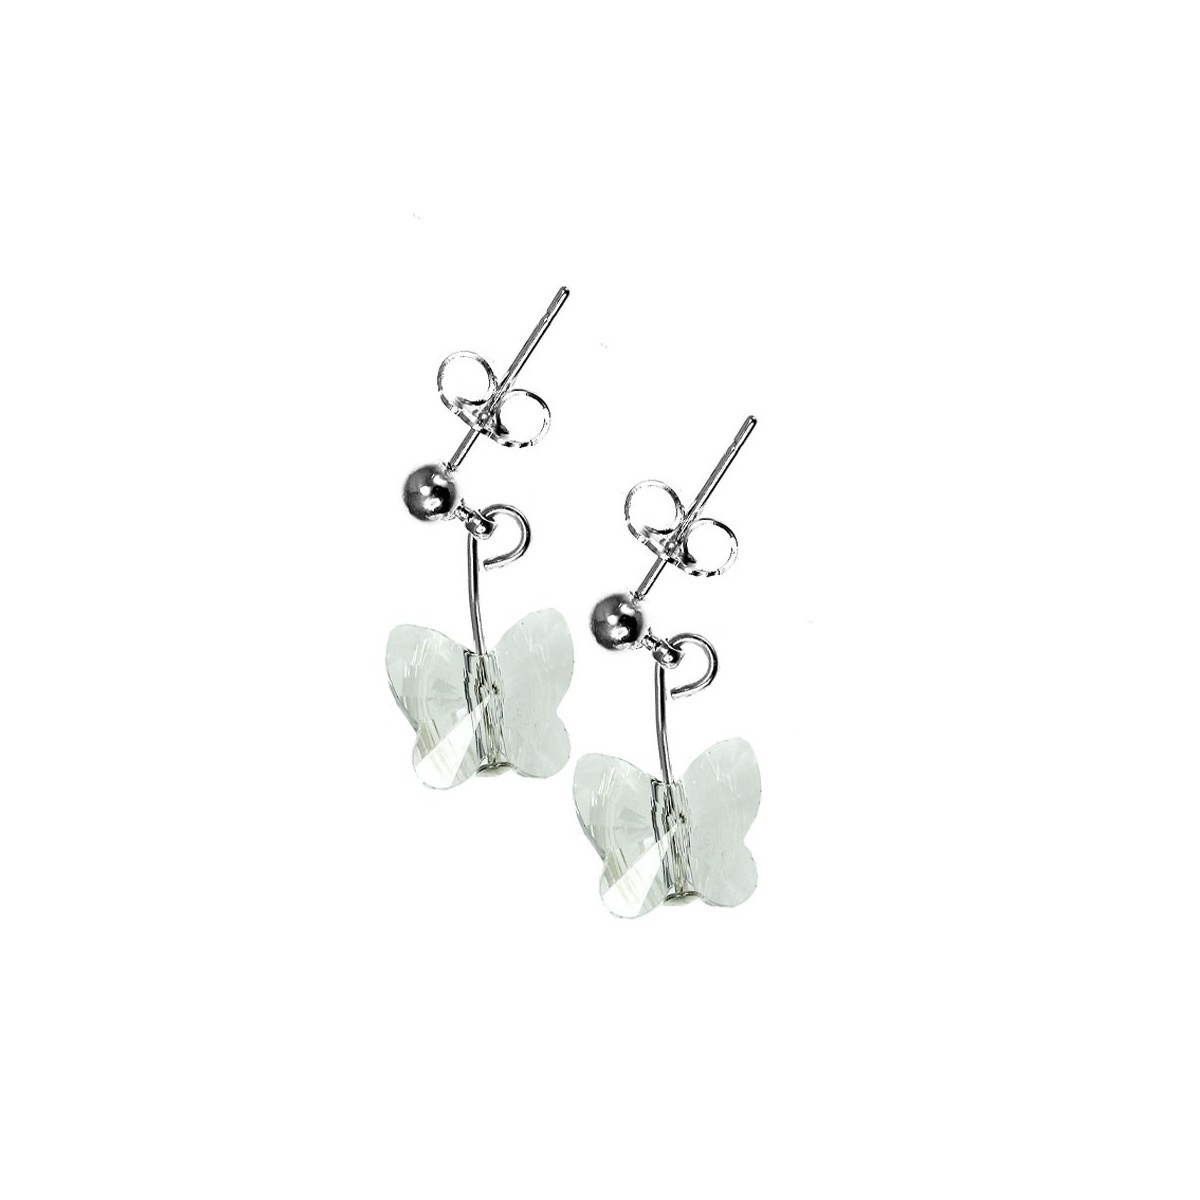 Boucles d'oreilles So Charm ornées d'un papillon blanc made with crystal from Swarovski